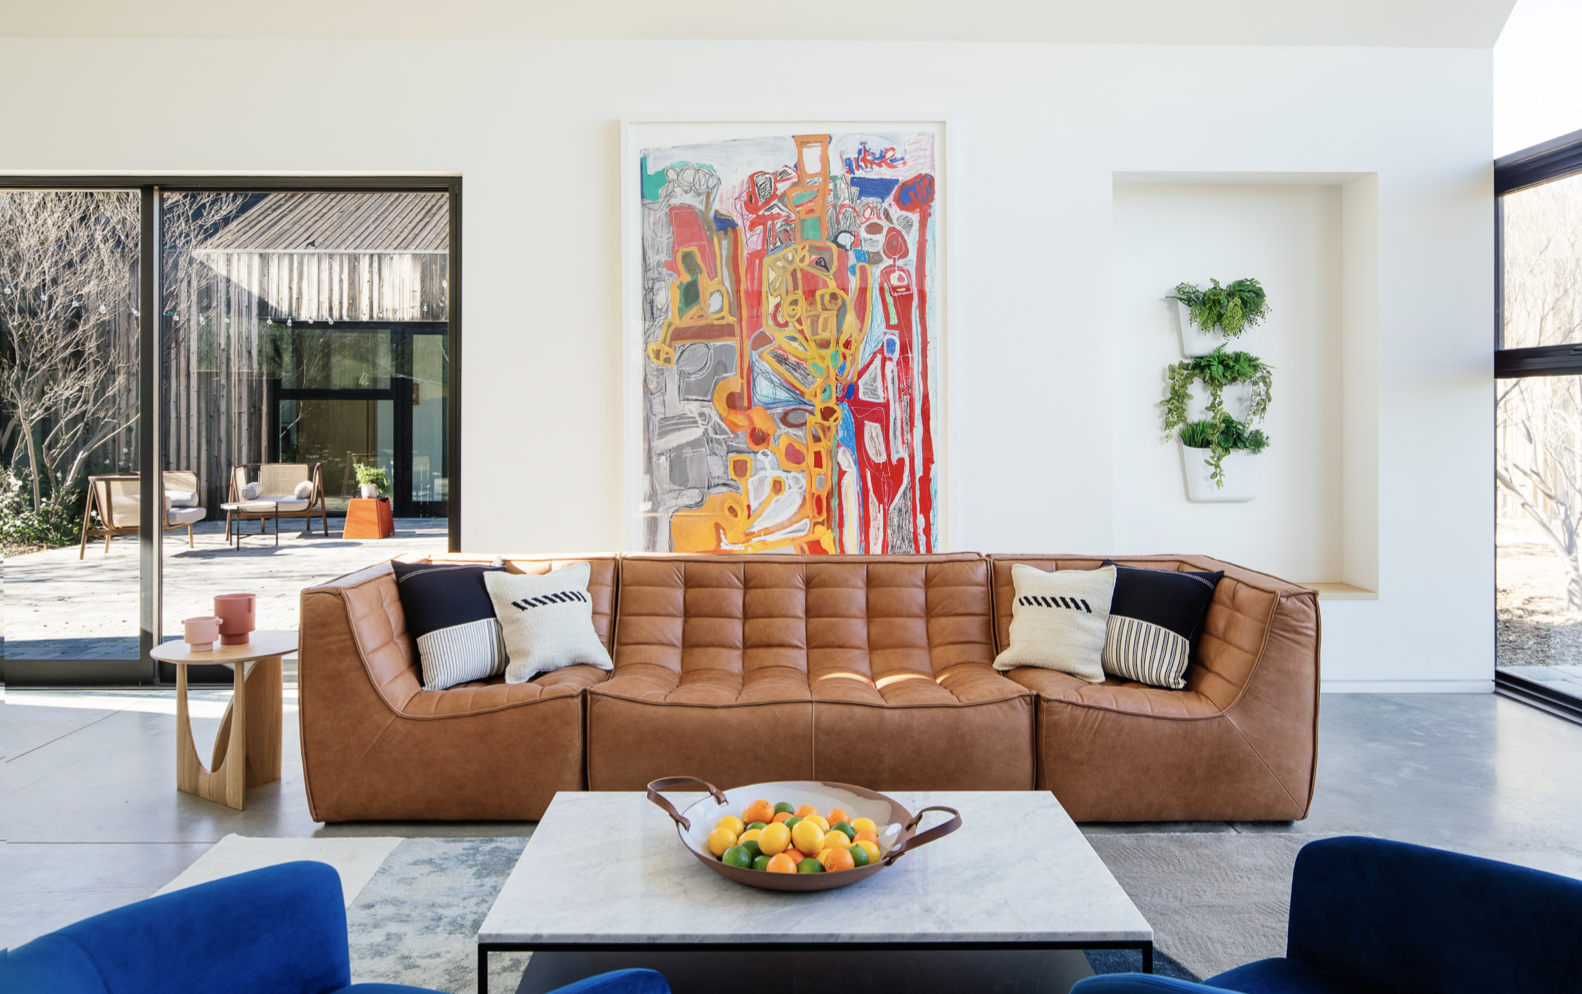 A brown leather sofa iin front of a colorful large piece of artwork